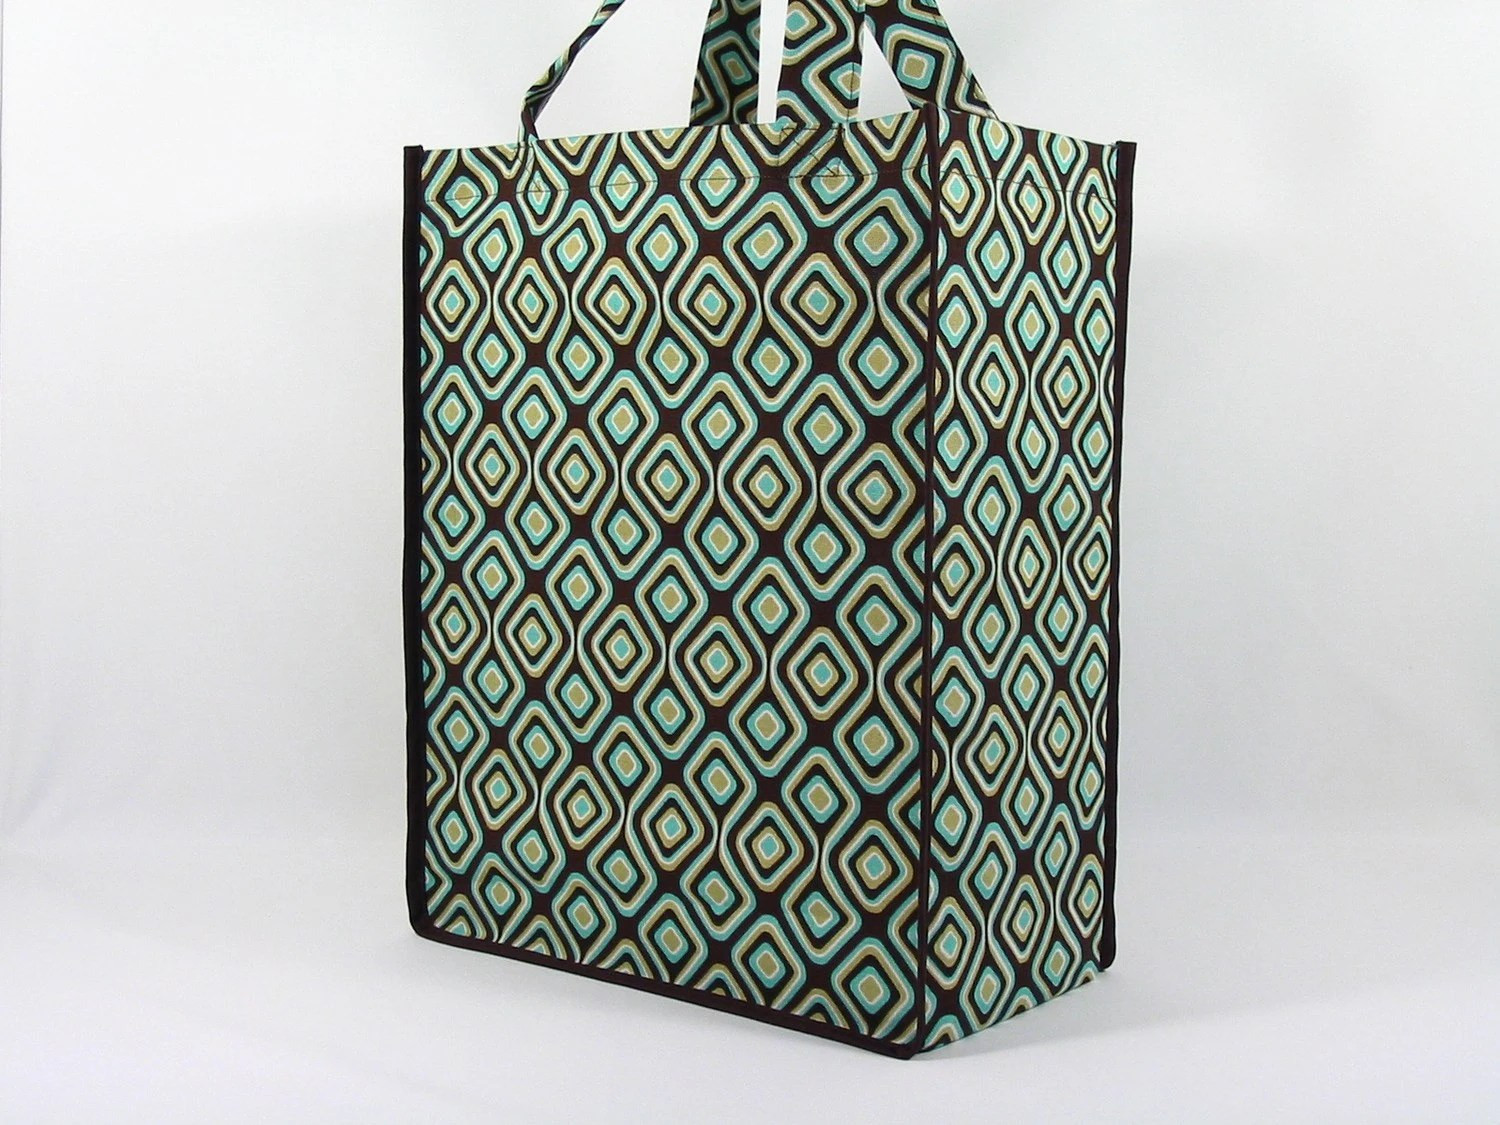 Reusable Multi-Functional Tote Bag-Chocolate/Natural Geometric